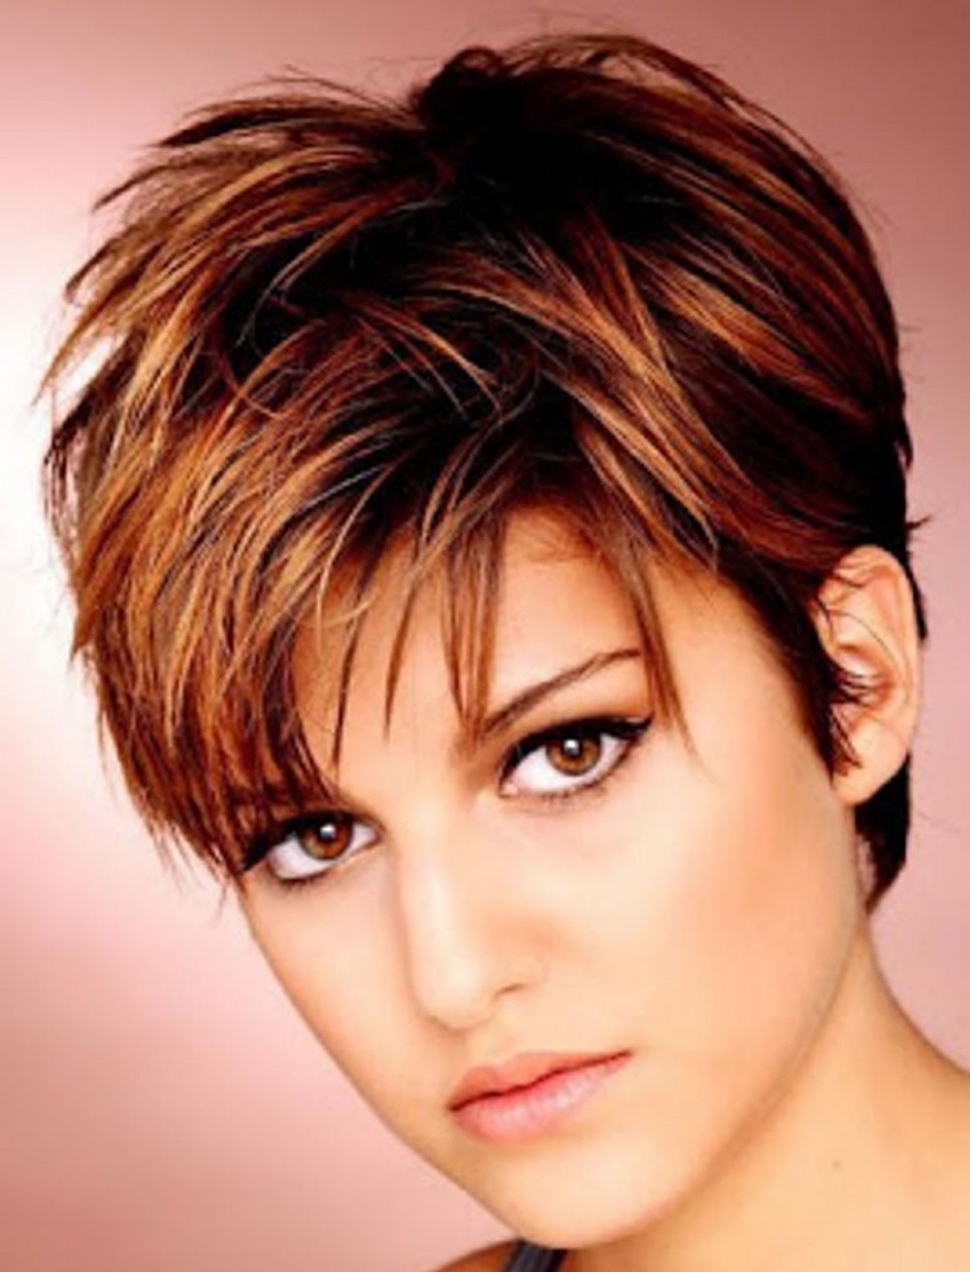 Short Hairstyles For Women With Round Faces And Glasses – Hair In Short Haircuts For Round Faces And Glasses (View 2 of 25)